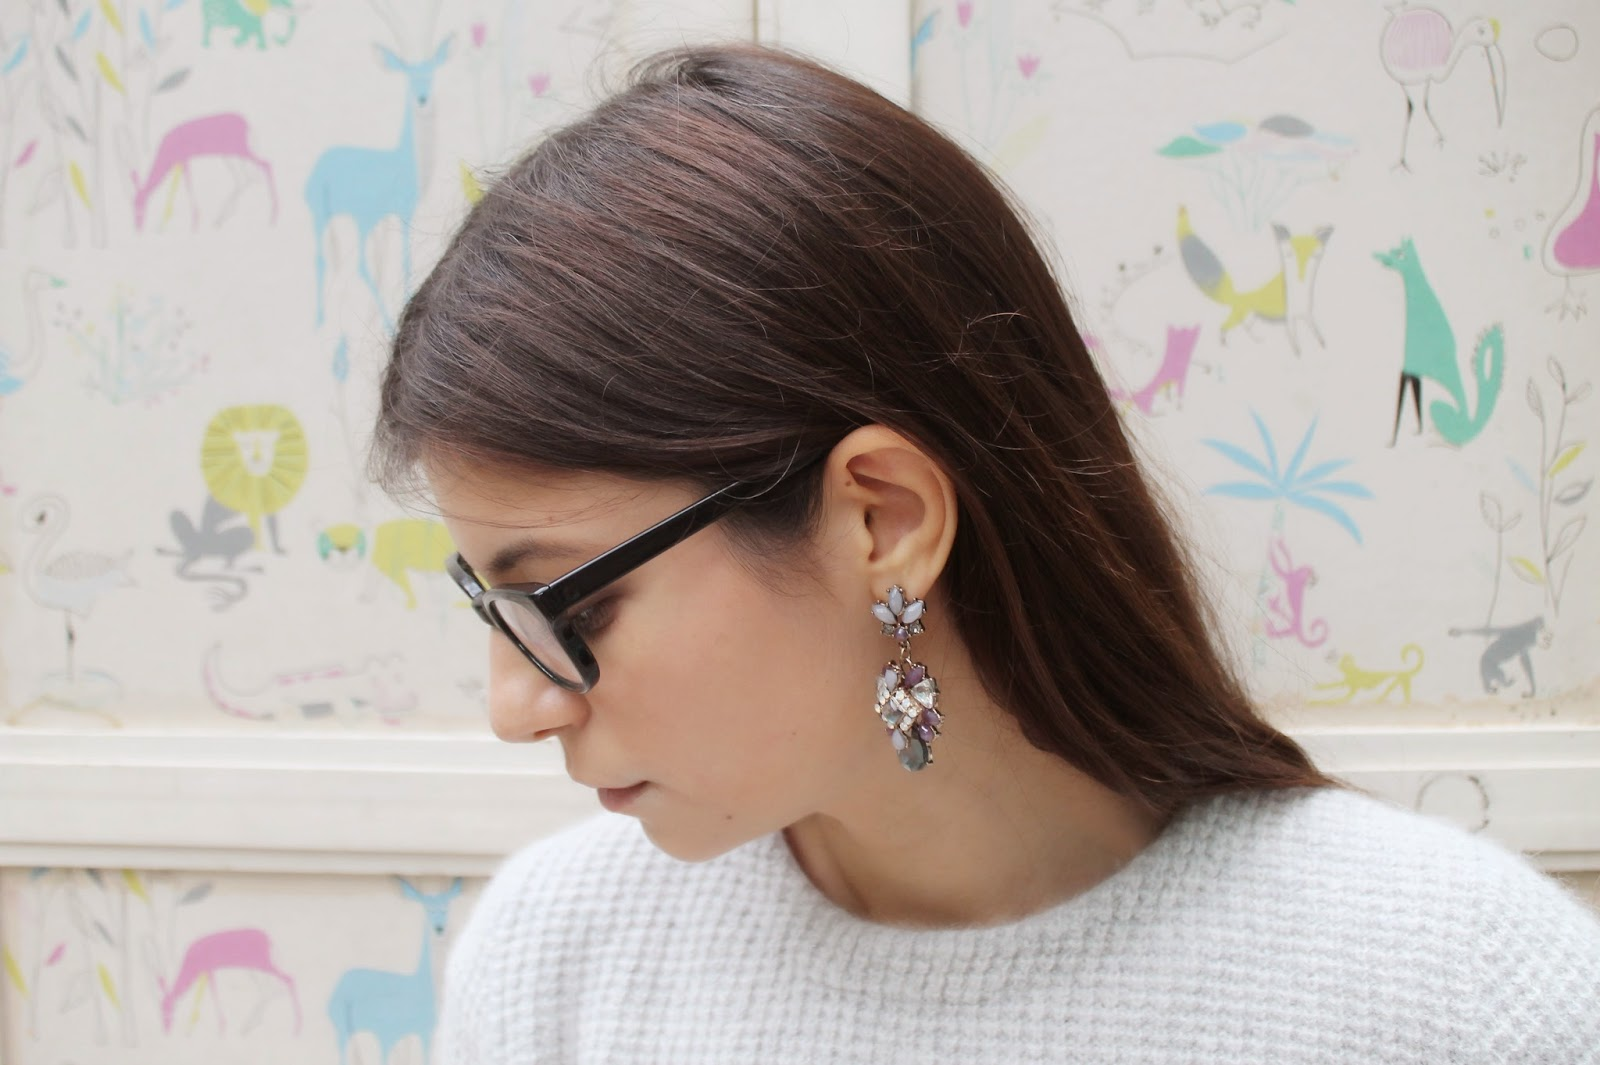 statement earrings, accessorize, wallpaper